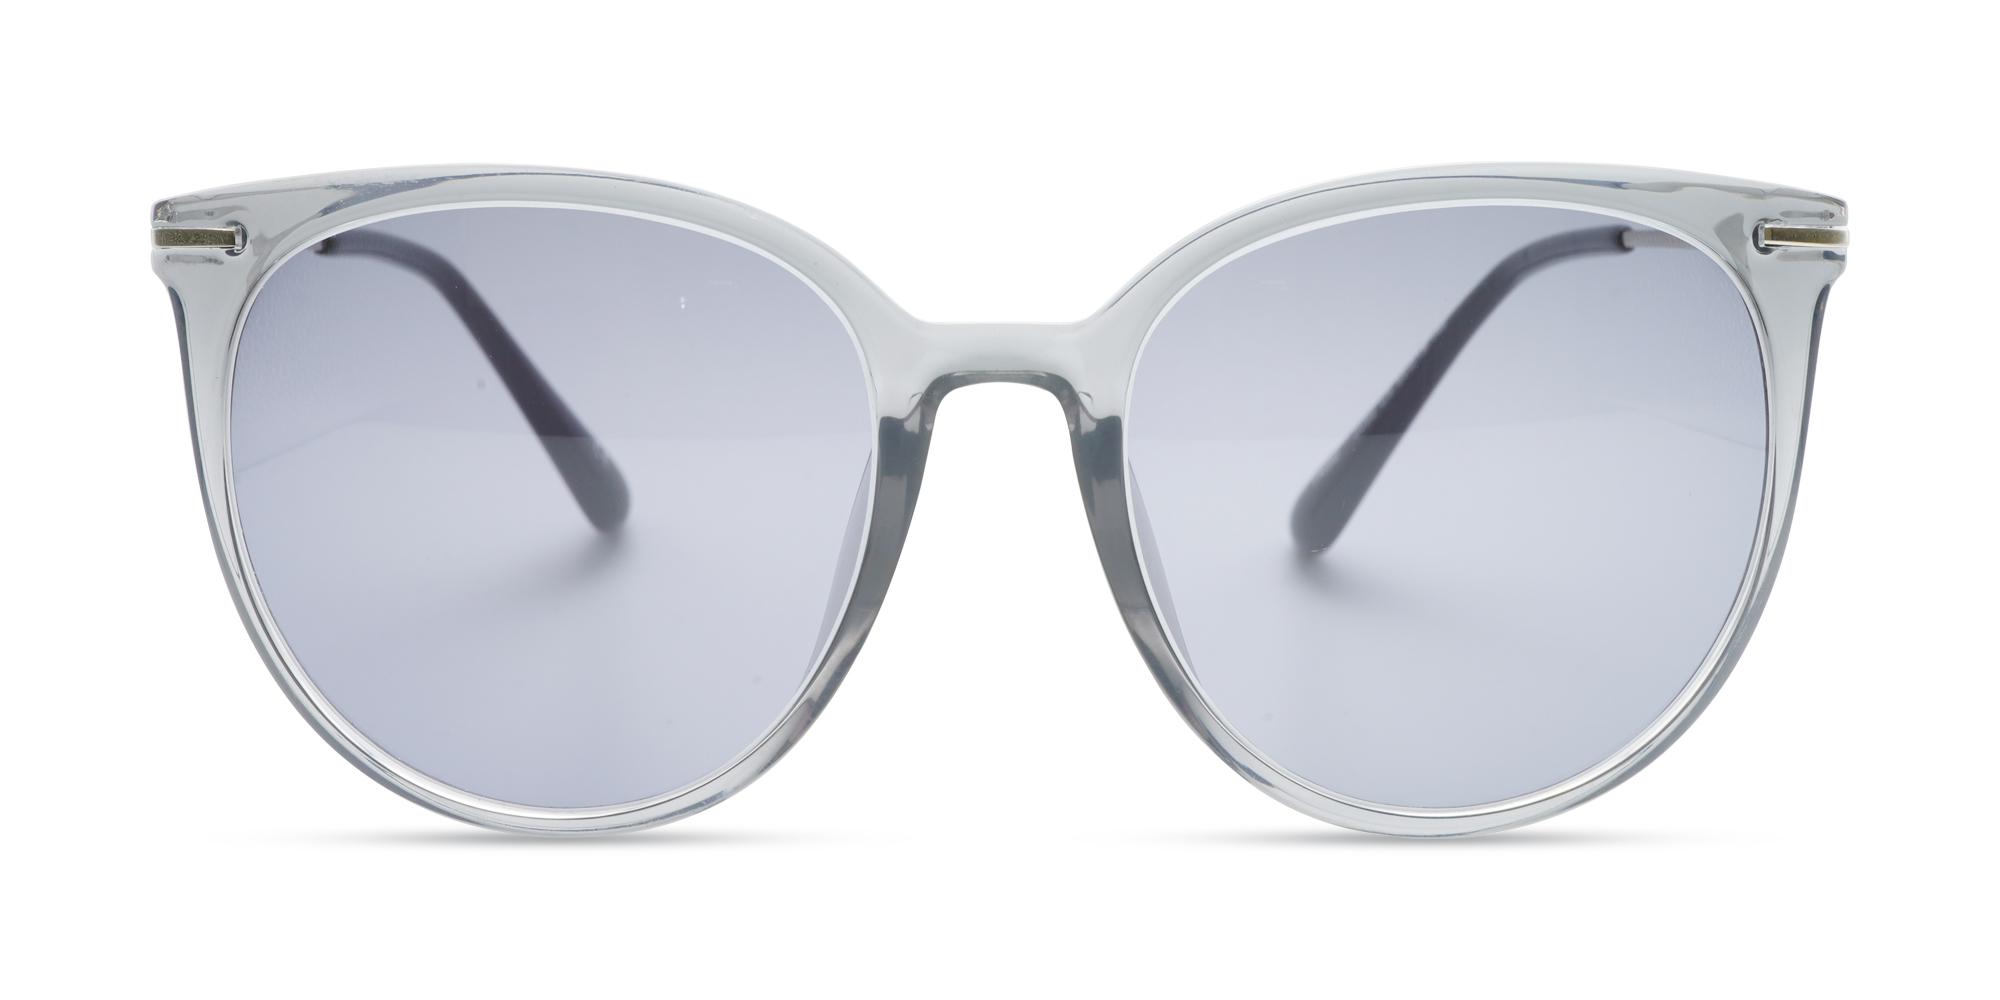 Elmira Rx Sunglasses - Women's Sunglasses